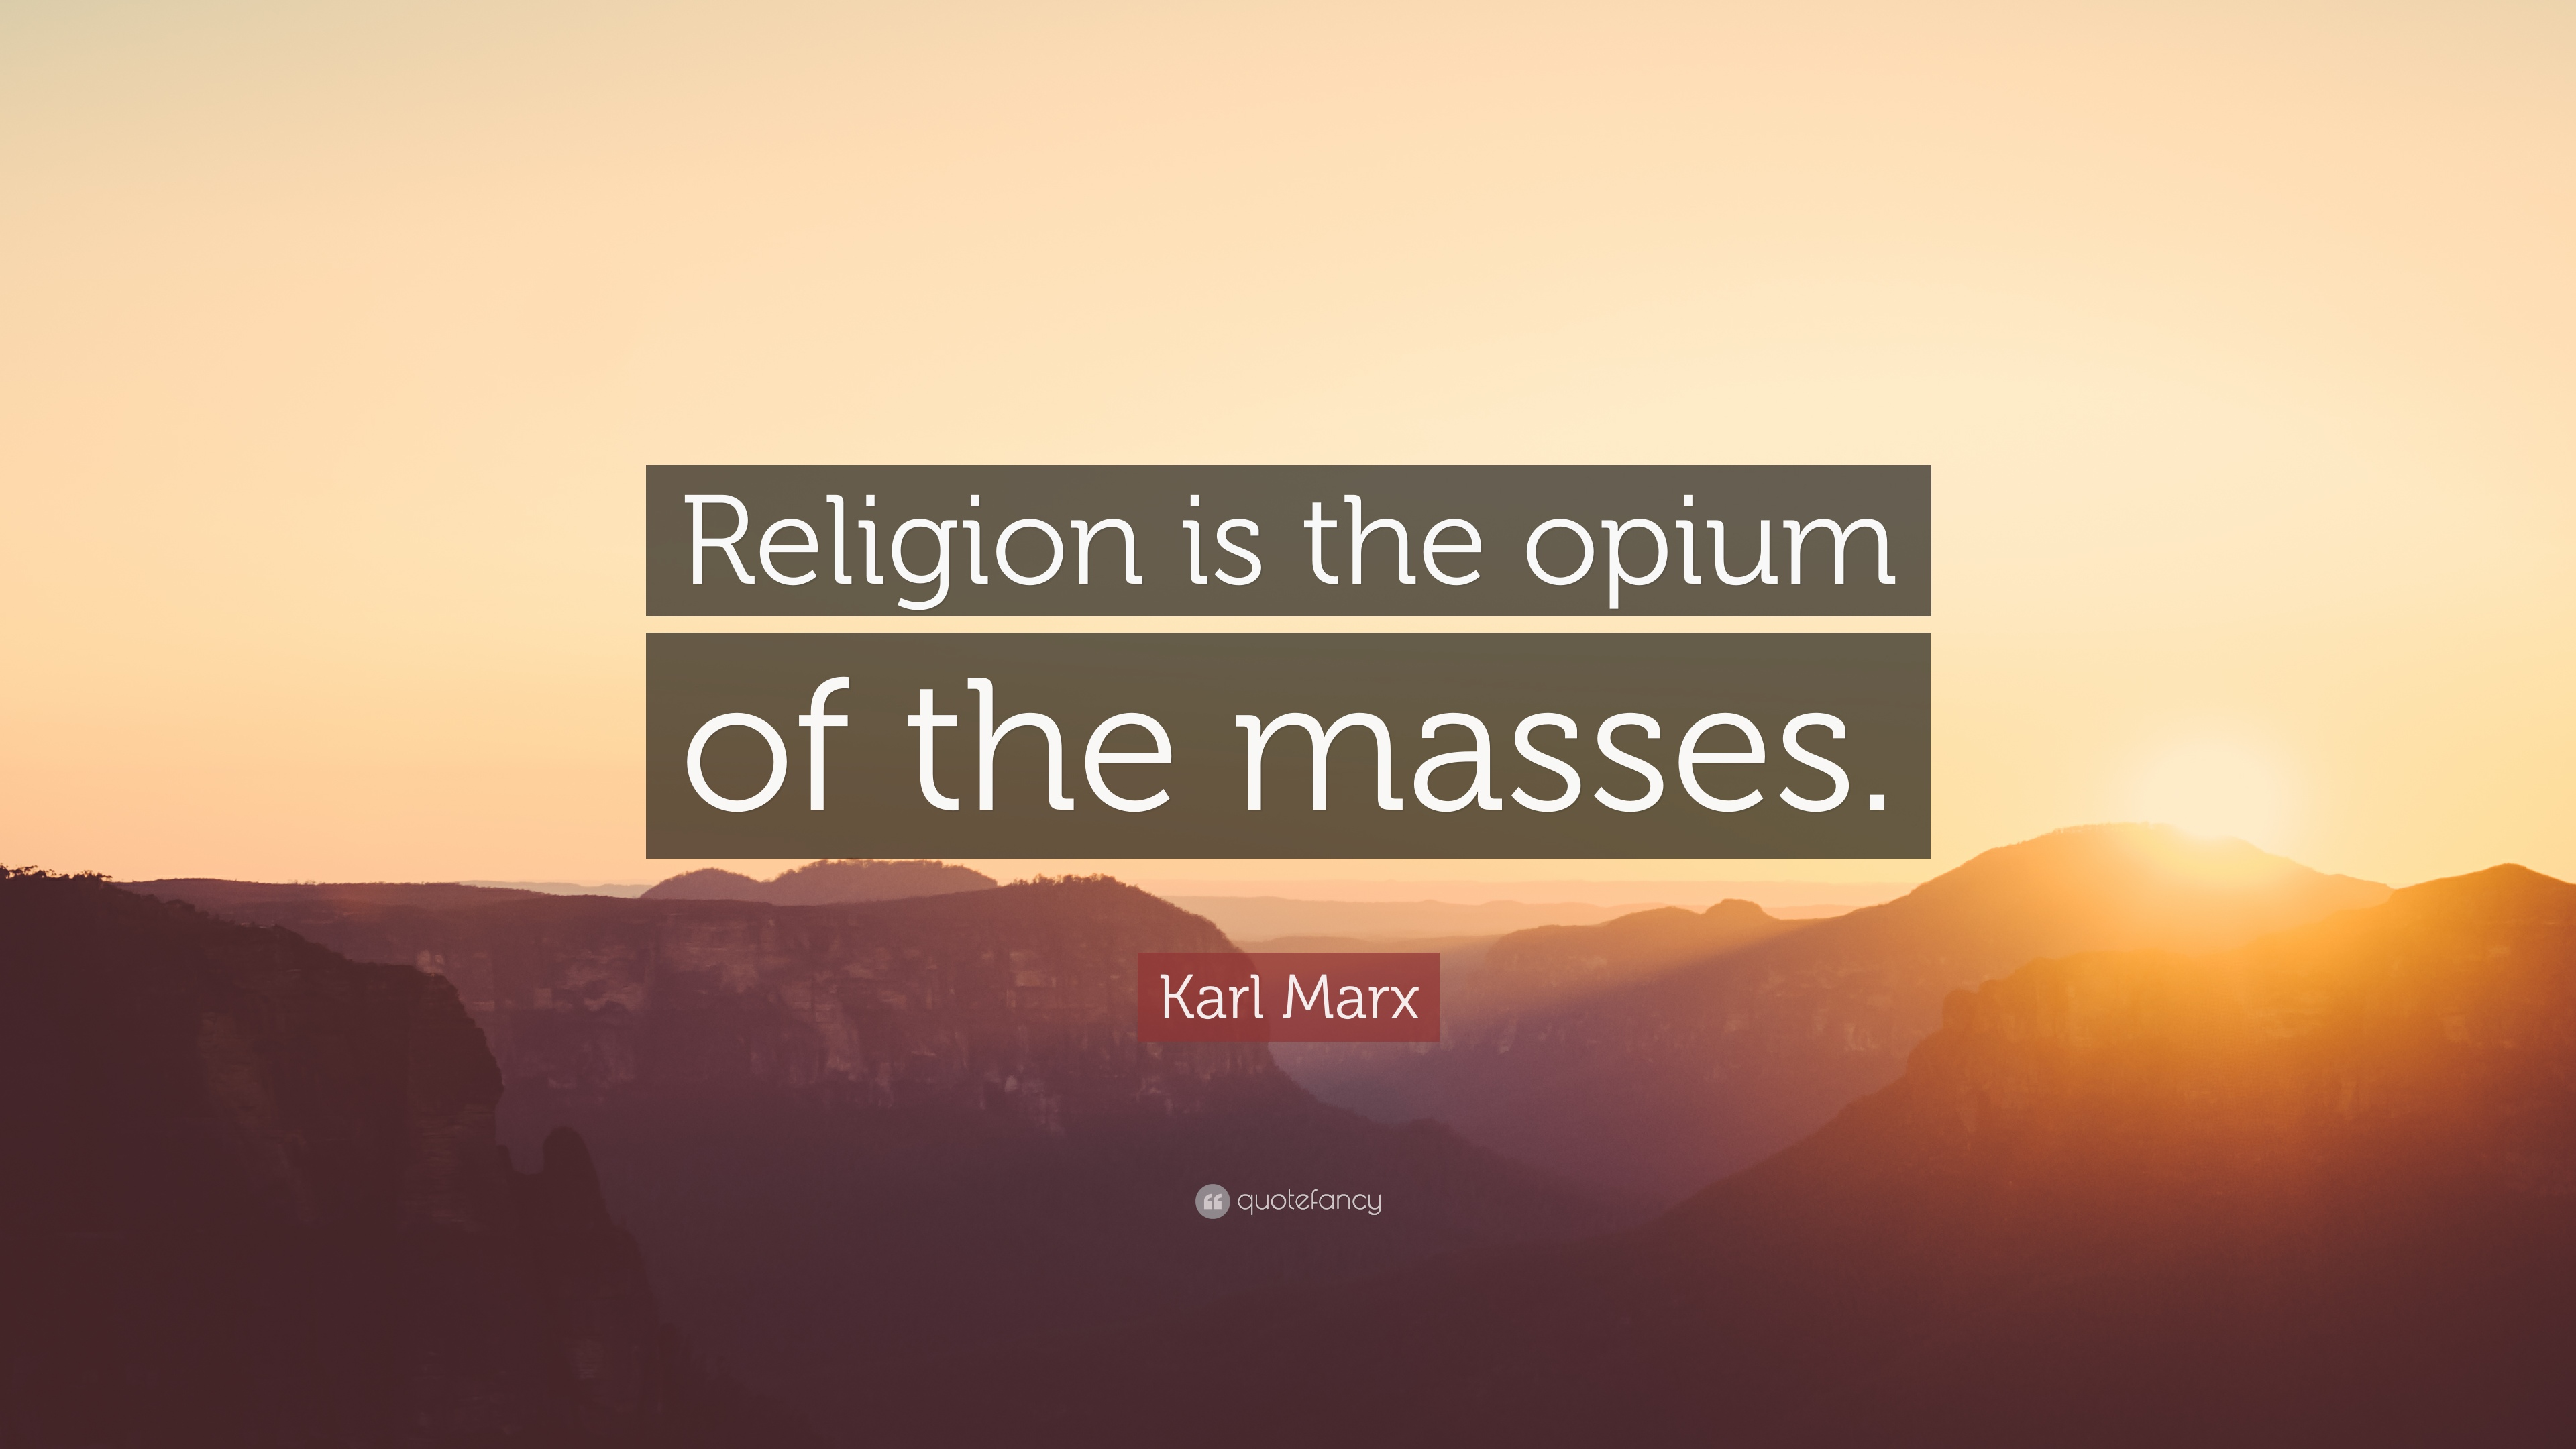 Sarcastic Wallpaper Quotes Karl Marx Quote Religion Is The Opium Of The Masses